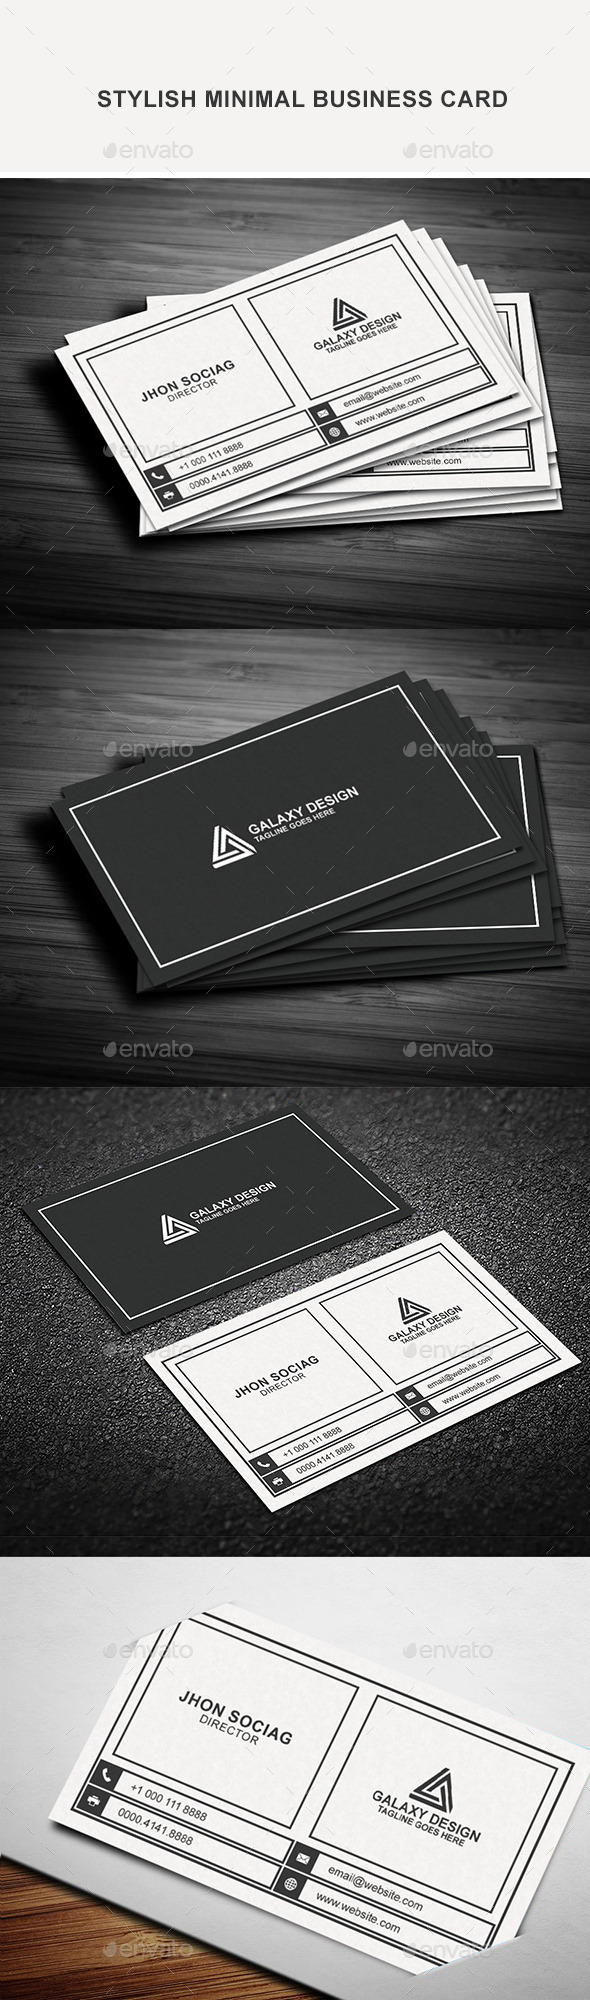 Stylish Minimal Business Card - Creative Business Cards